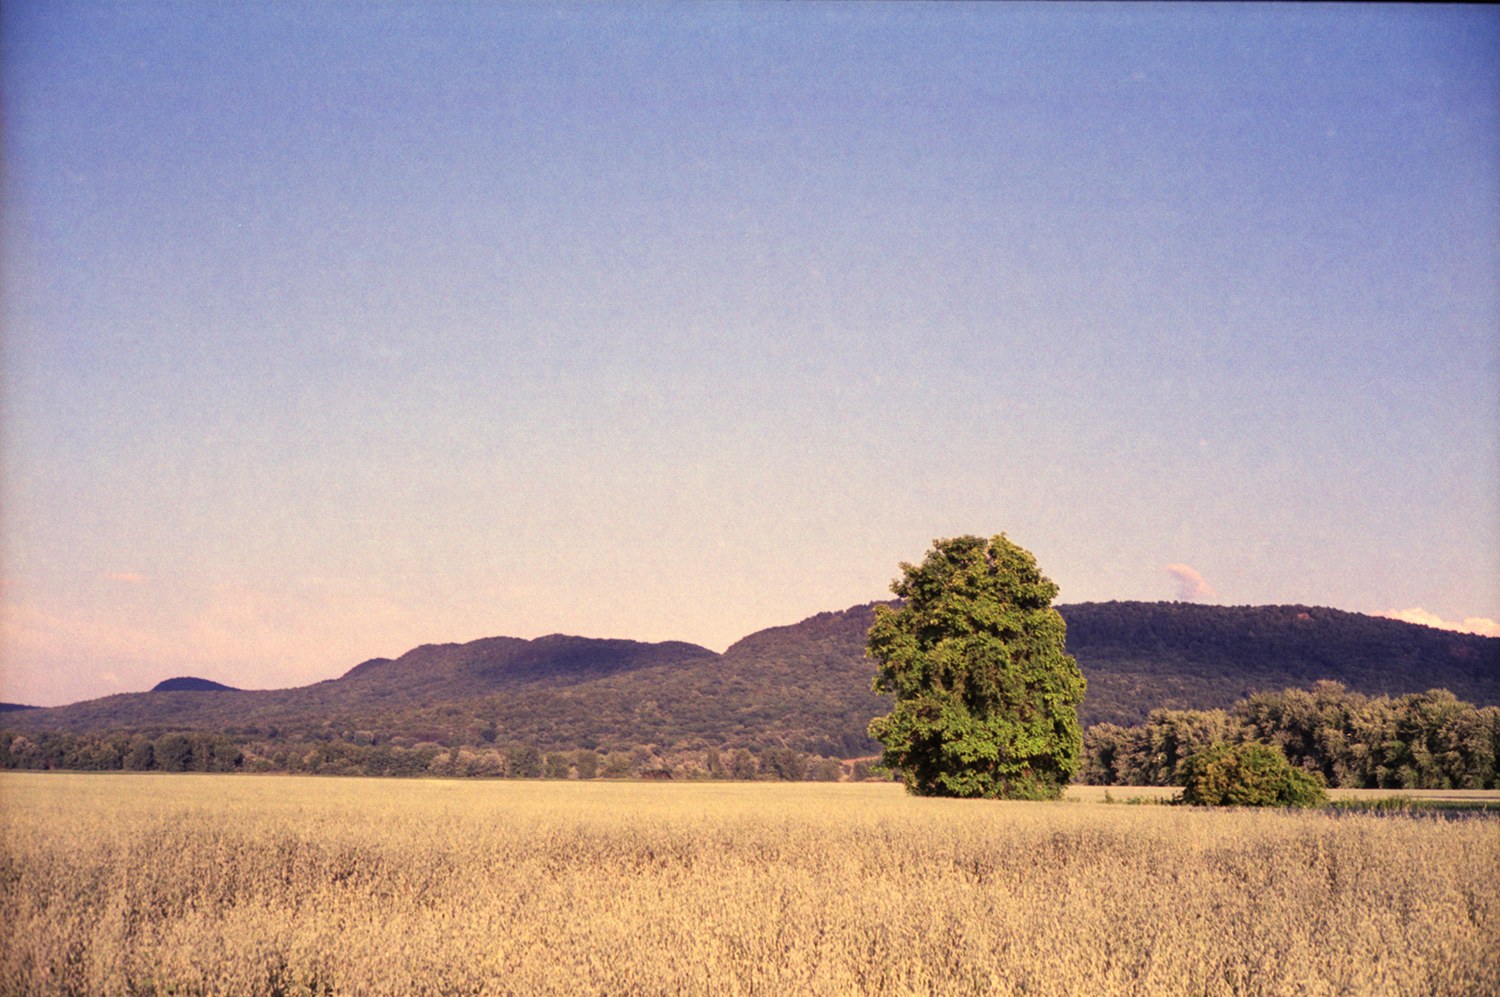 tree_mountains_northampton_field_sized.jpg